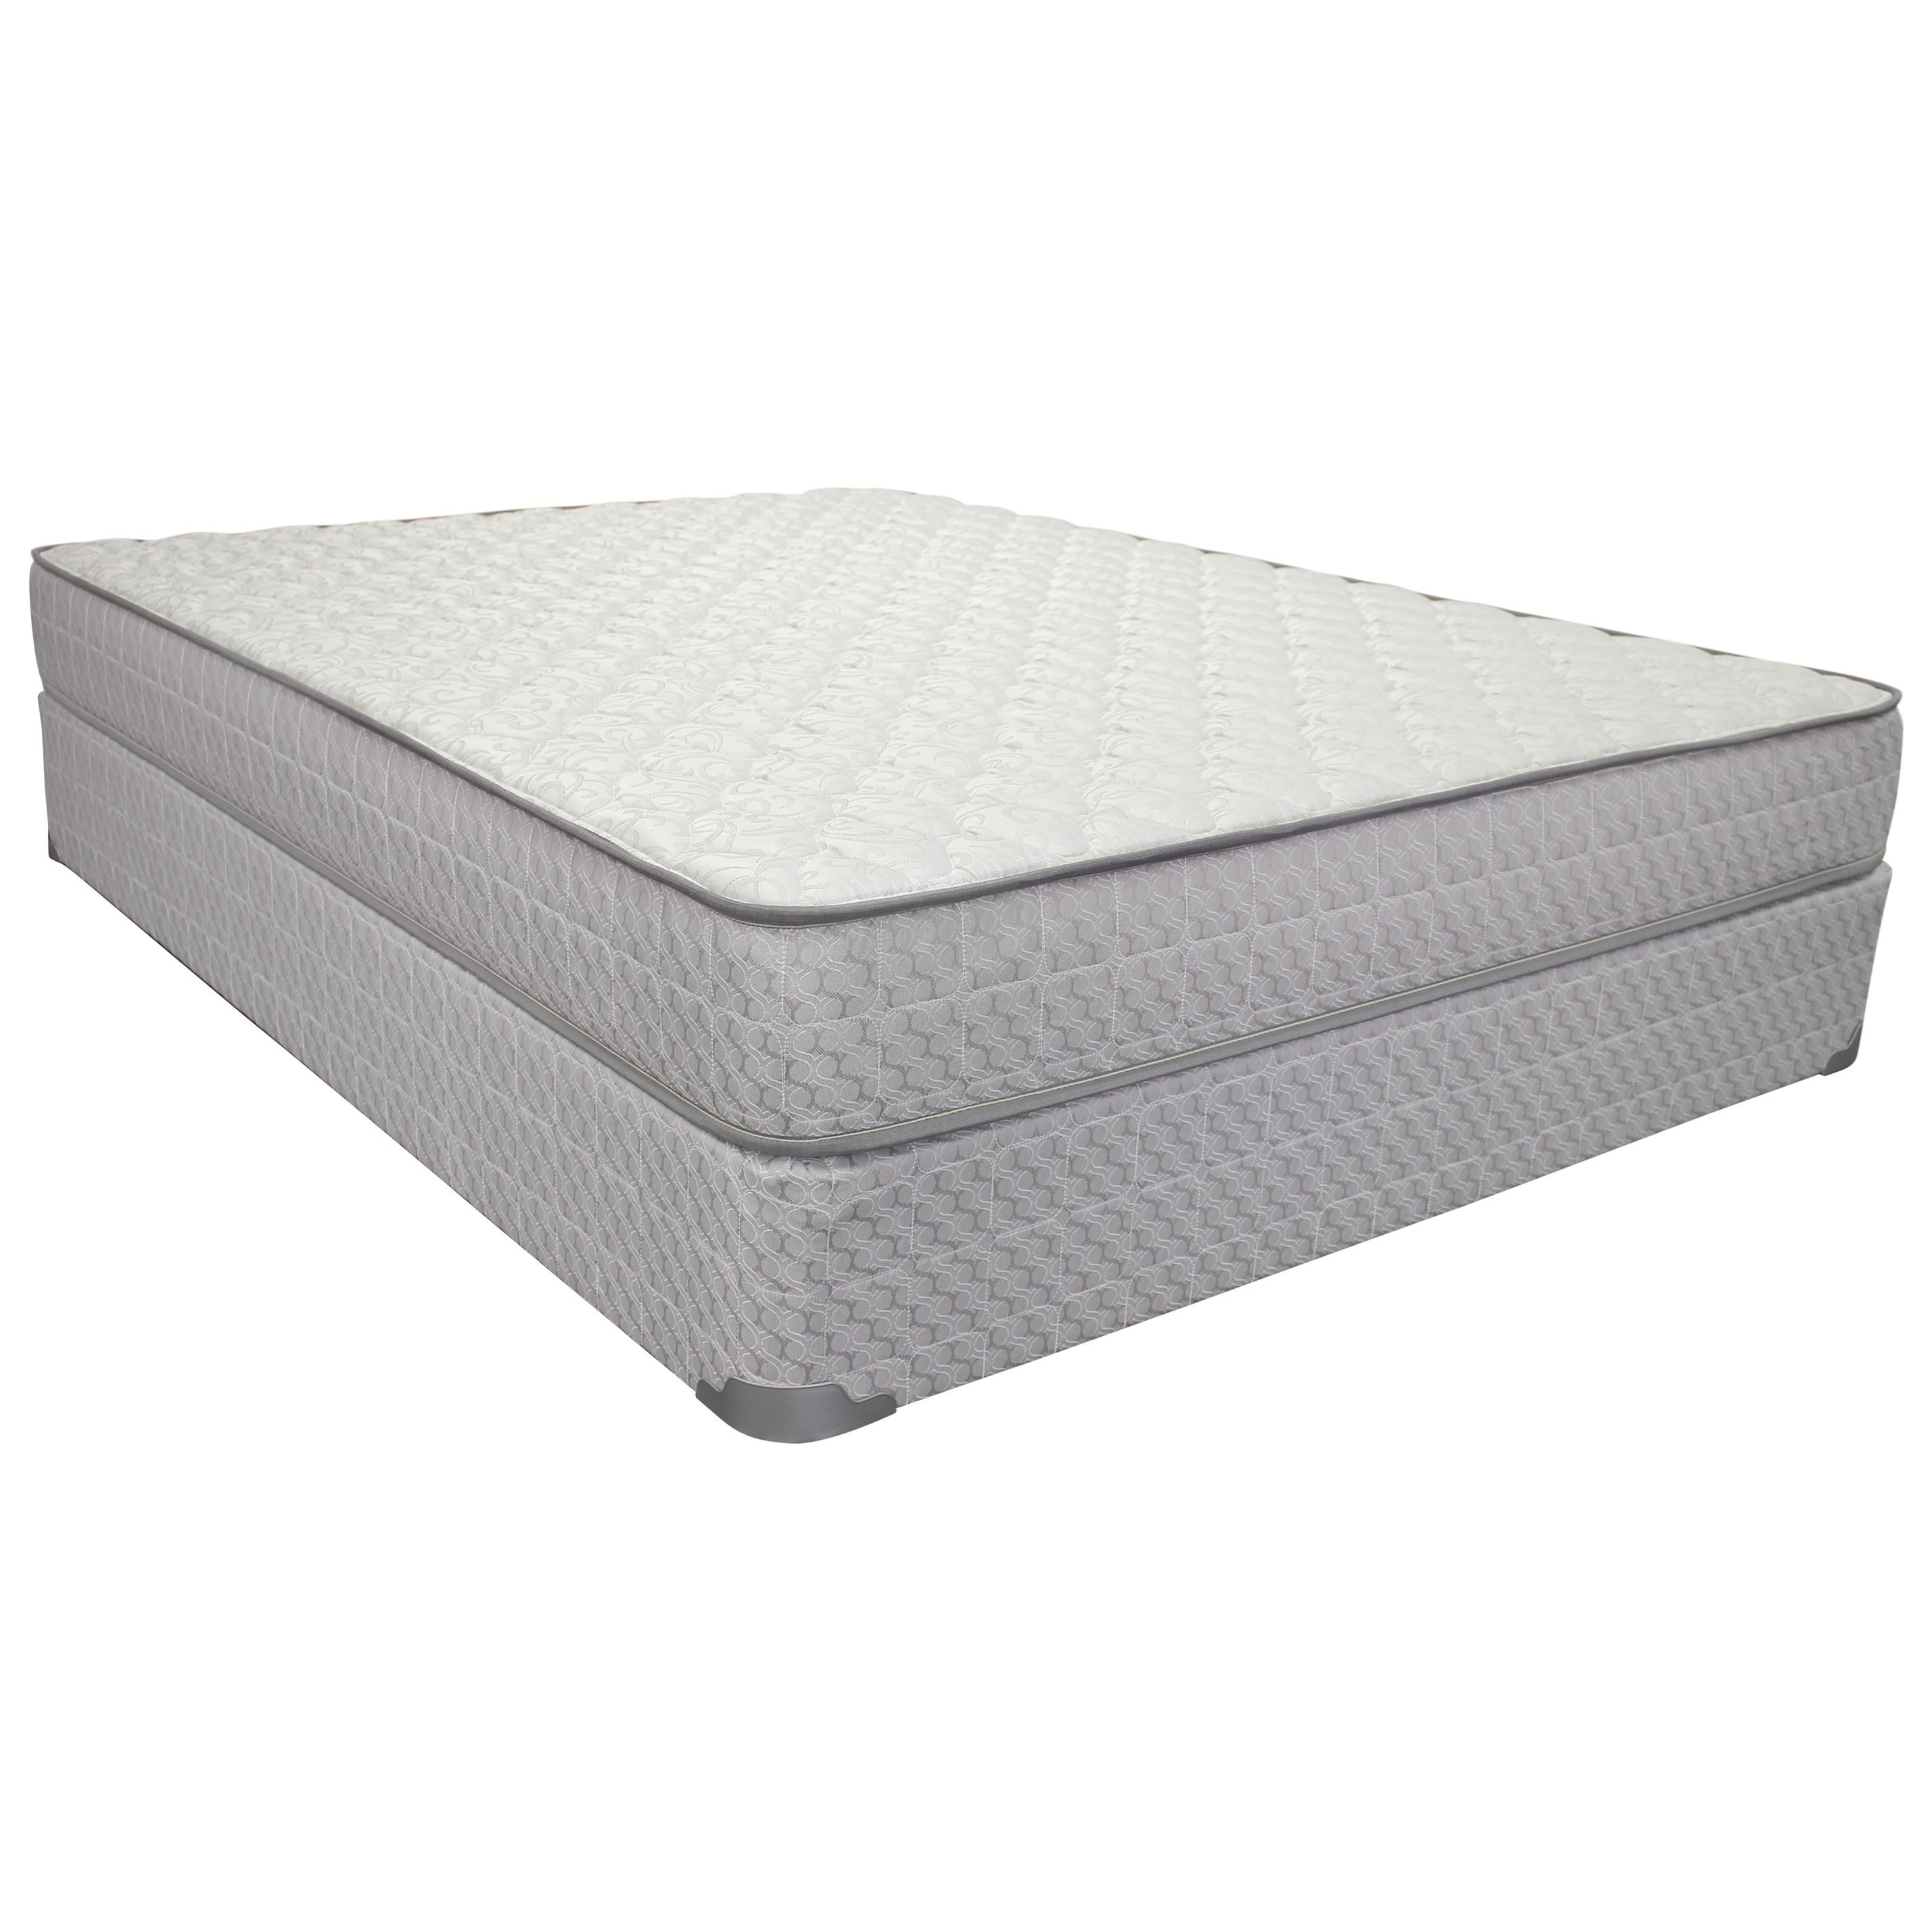 "Twin 8 1/2"" Innerspring EPT Mattress Set"